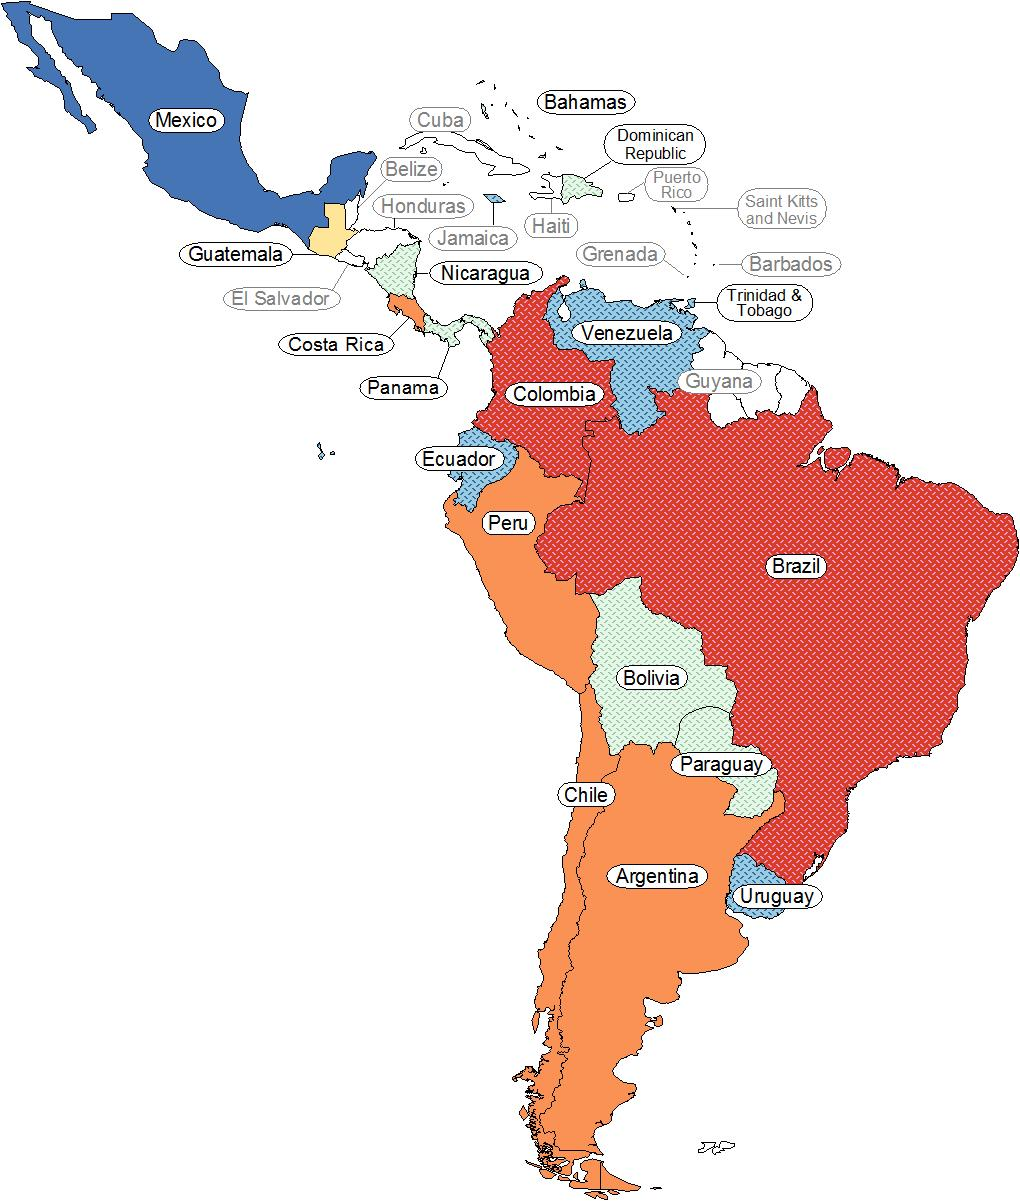 Page 25 Country Count 6 1 1 2 Number of Students 5 3-9 4 10-28 2 29-60 1 61-67 Top 5 Countries in Region Represented at Cornell Mexico Brazil Colombia Peru Chile Top